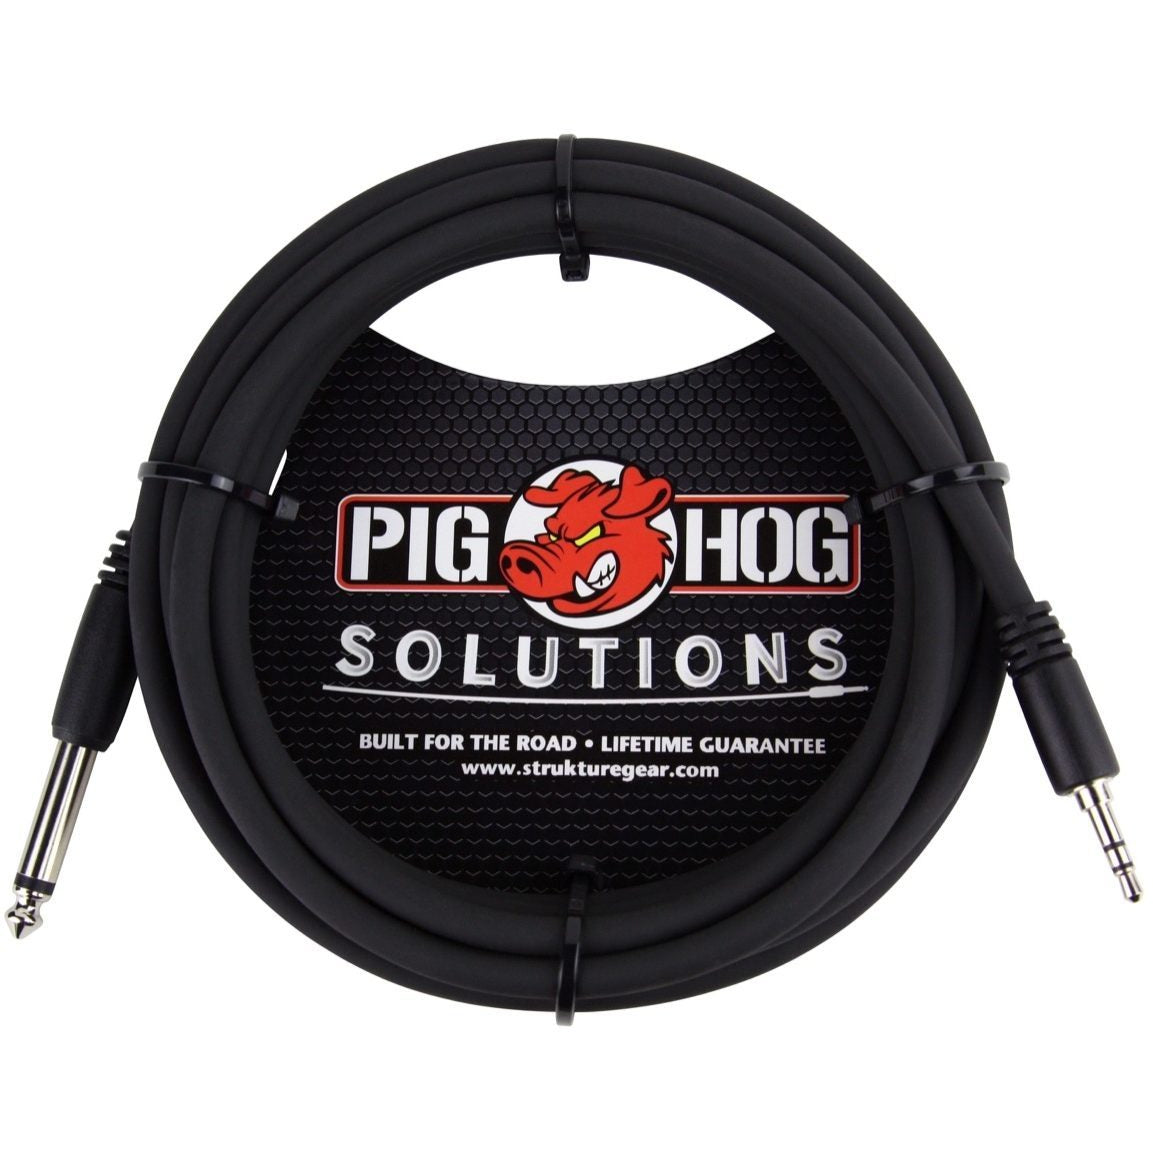 Pig Hog 1/4 Inch TS (Male) to 3.5mm (Male) Adaptor Cable, 10 Foot